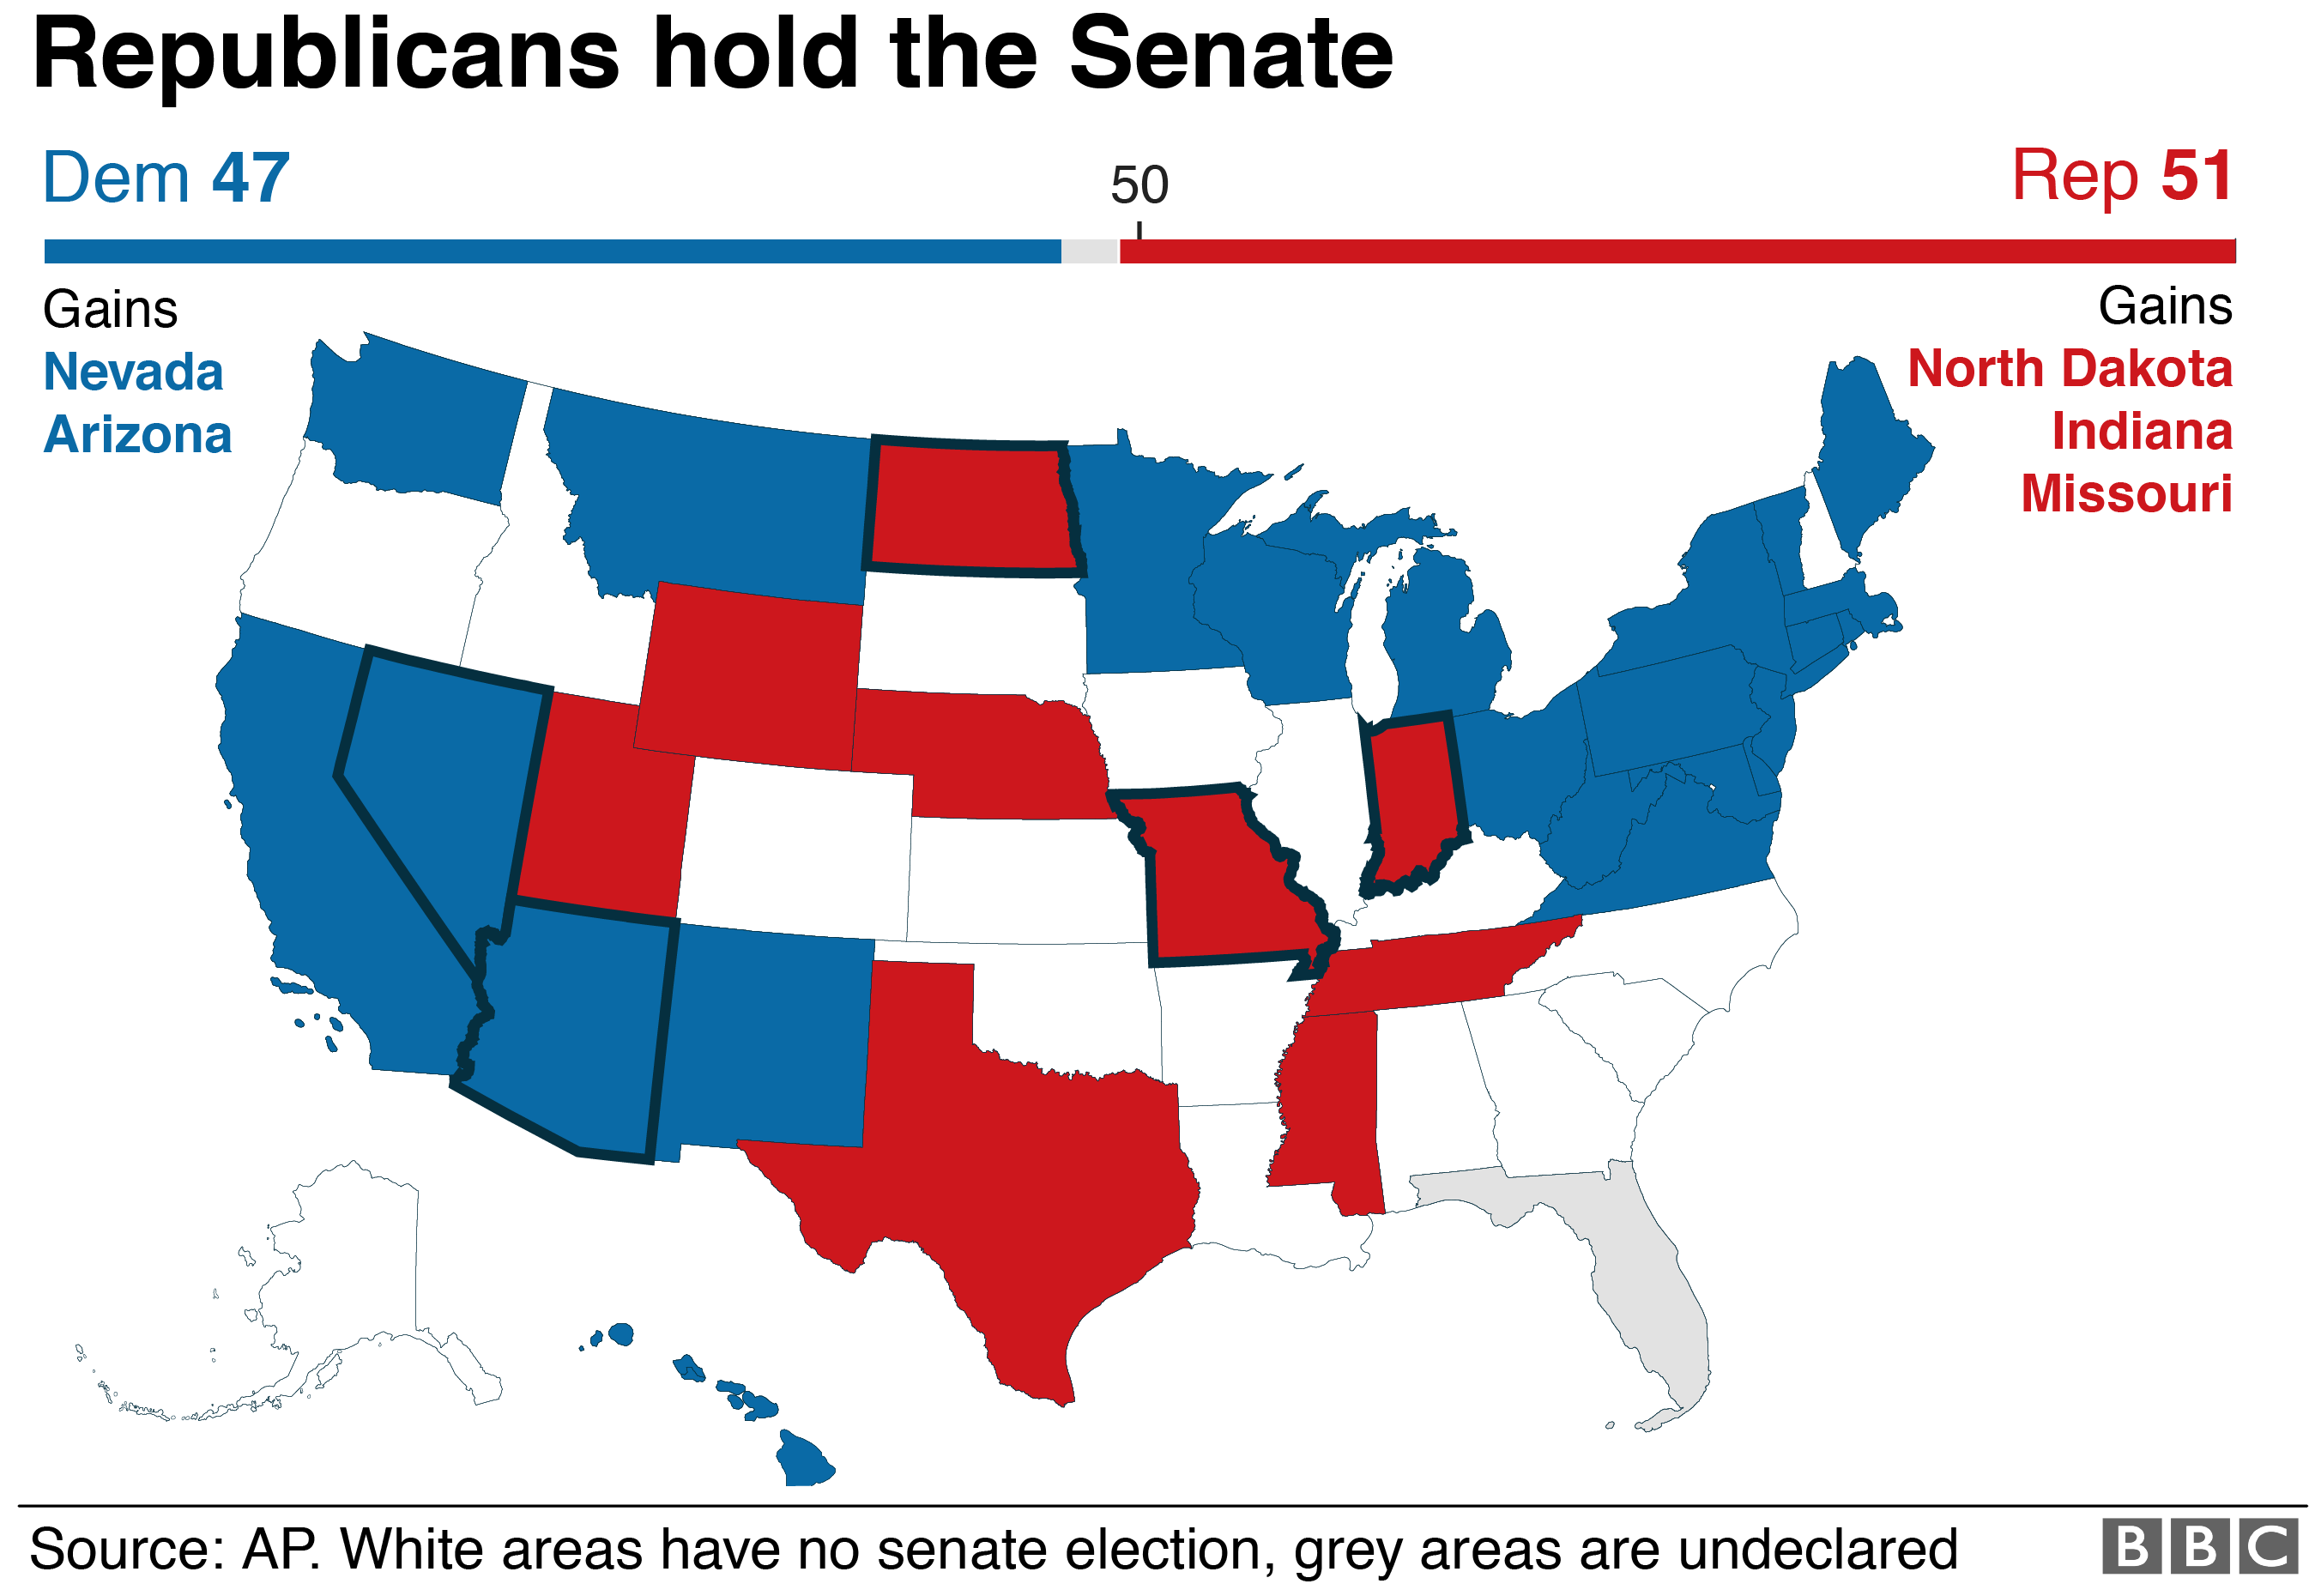 Map showing that the Republicans held the Senate, gaining three seats compared to two for the Democrats